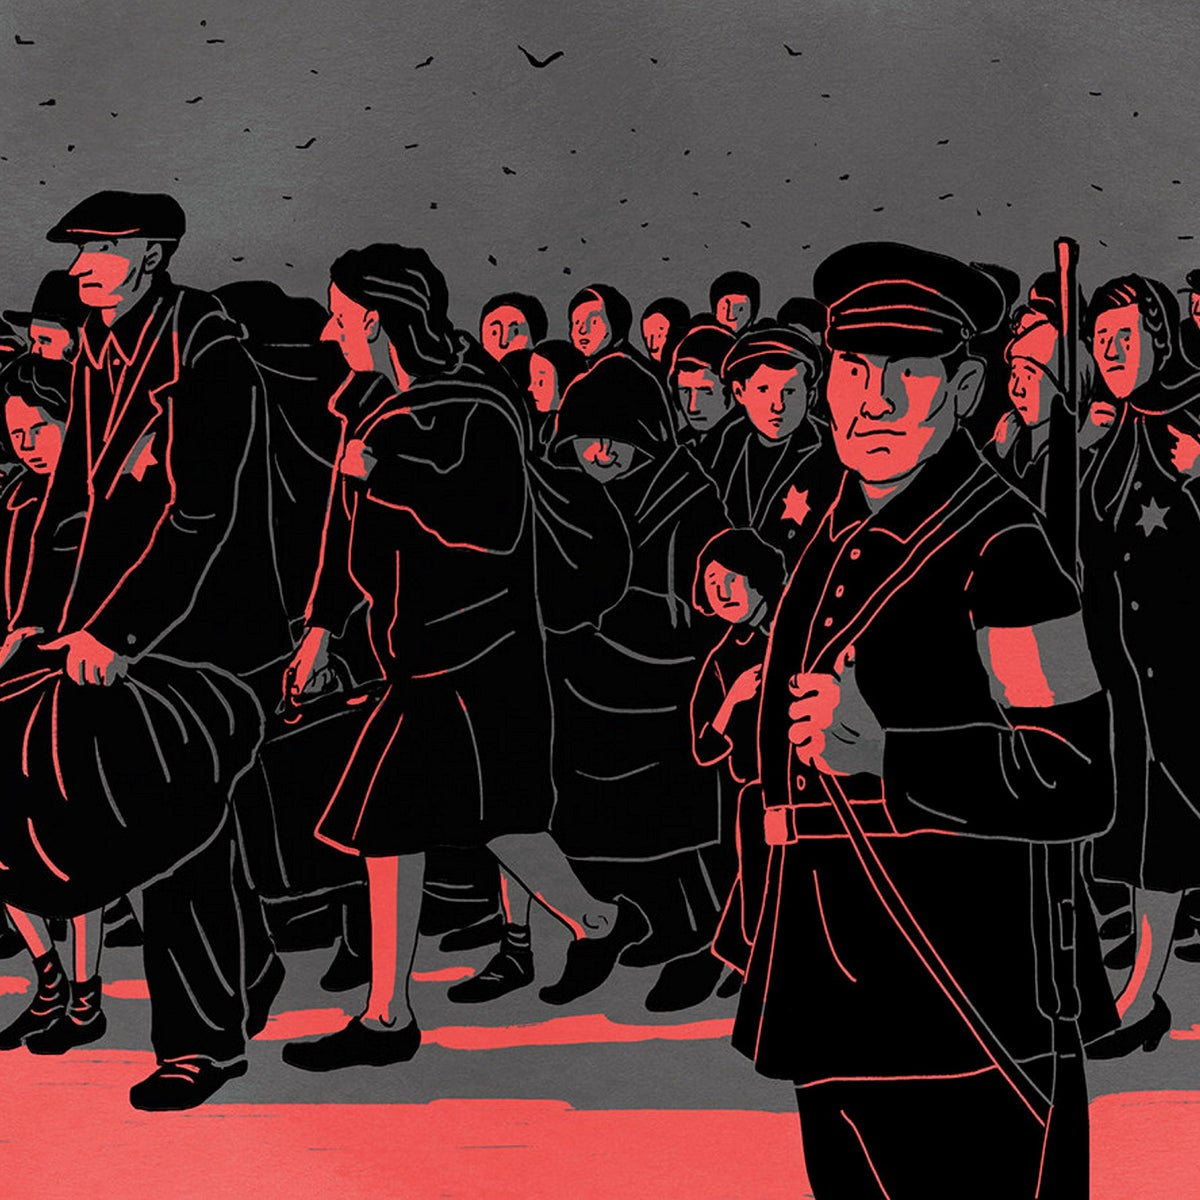 Illustration of Soviet citzens being escorted to their deaths by Nazi guards in August 1942.